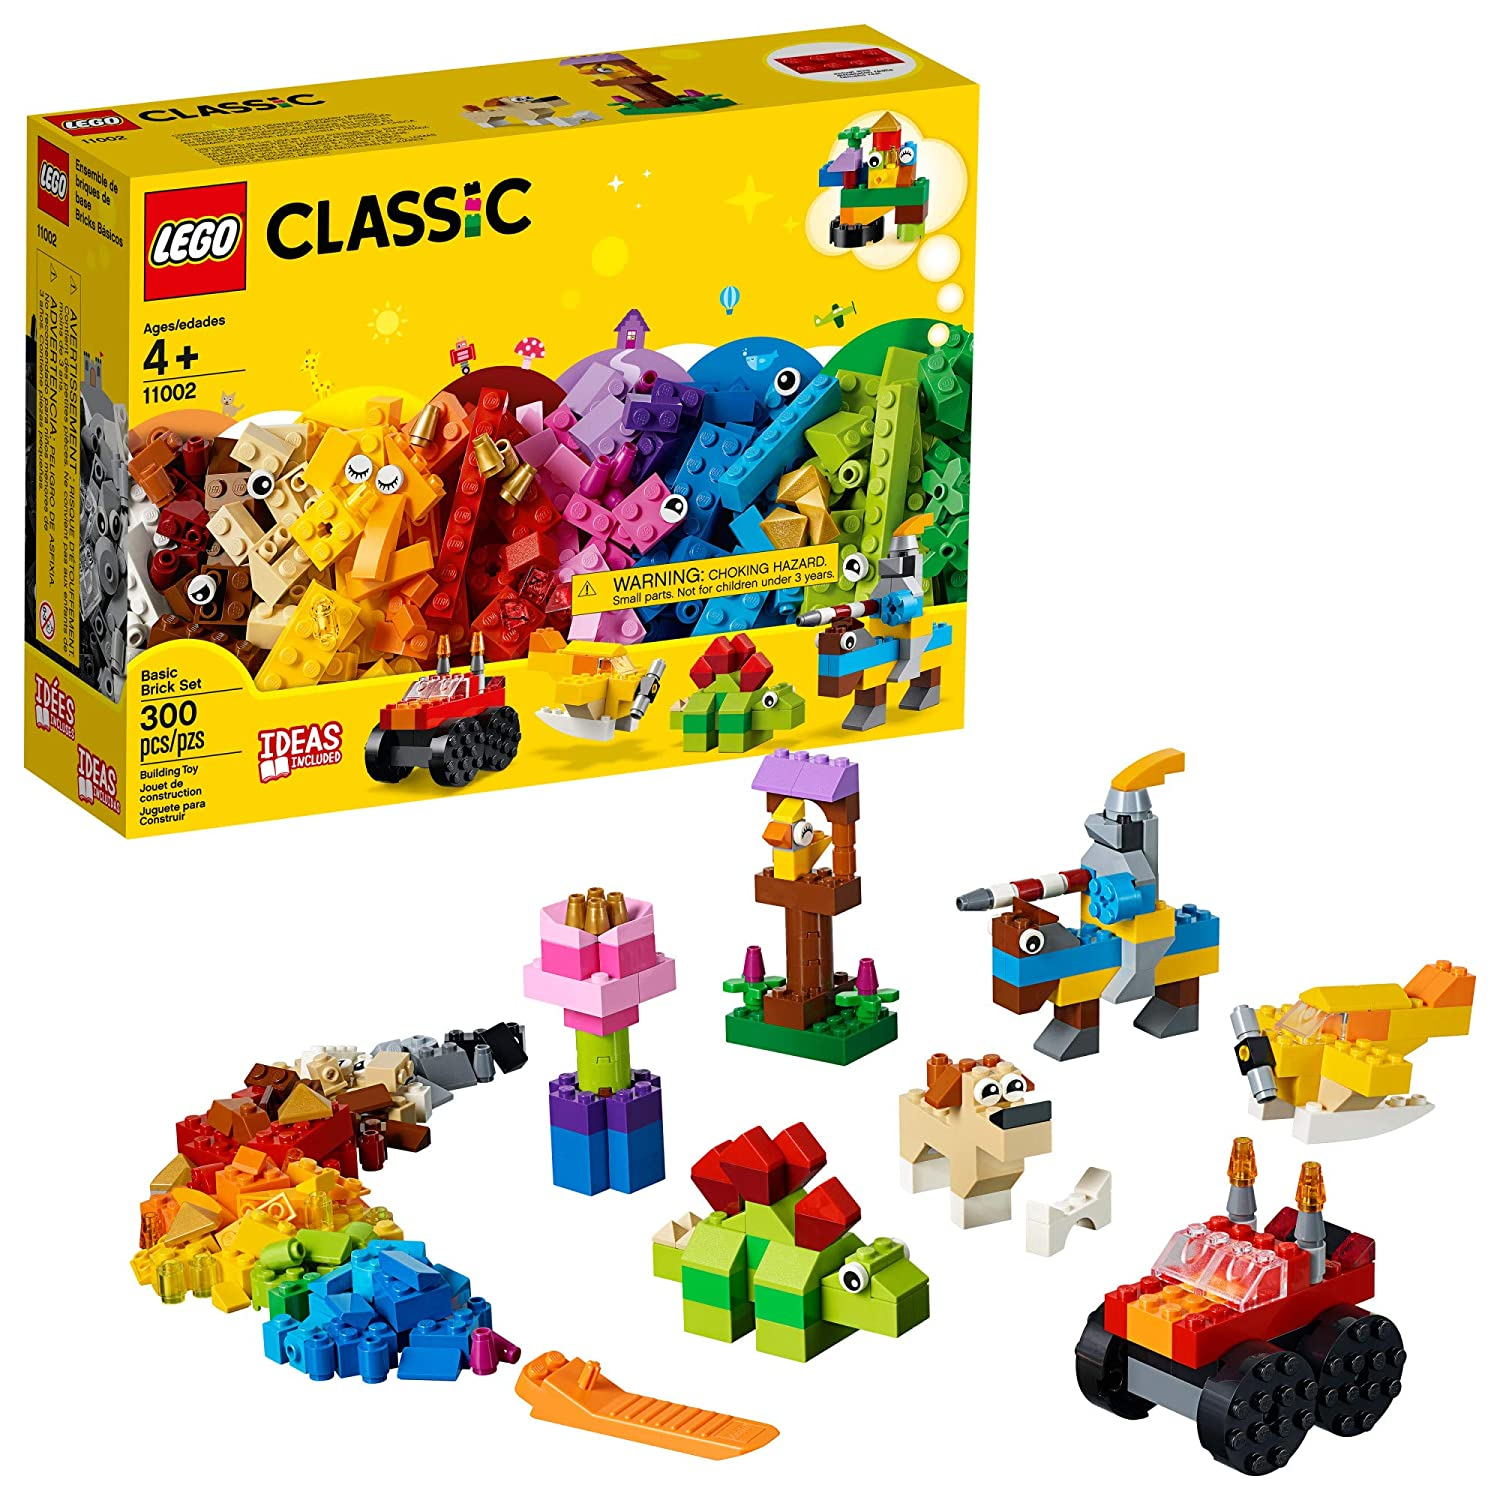 LEGO Classic Basic Brick Set 11002 Building Kit (300 Pieces)